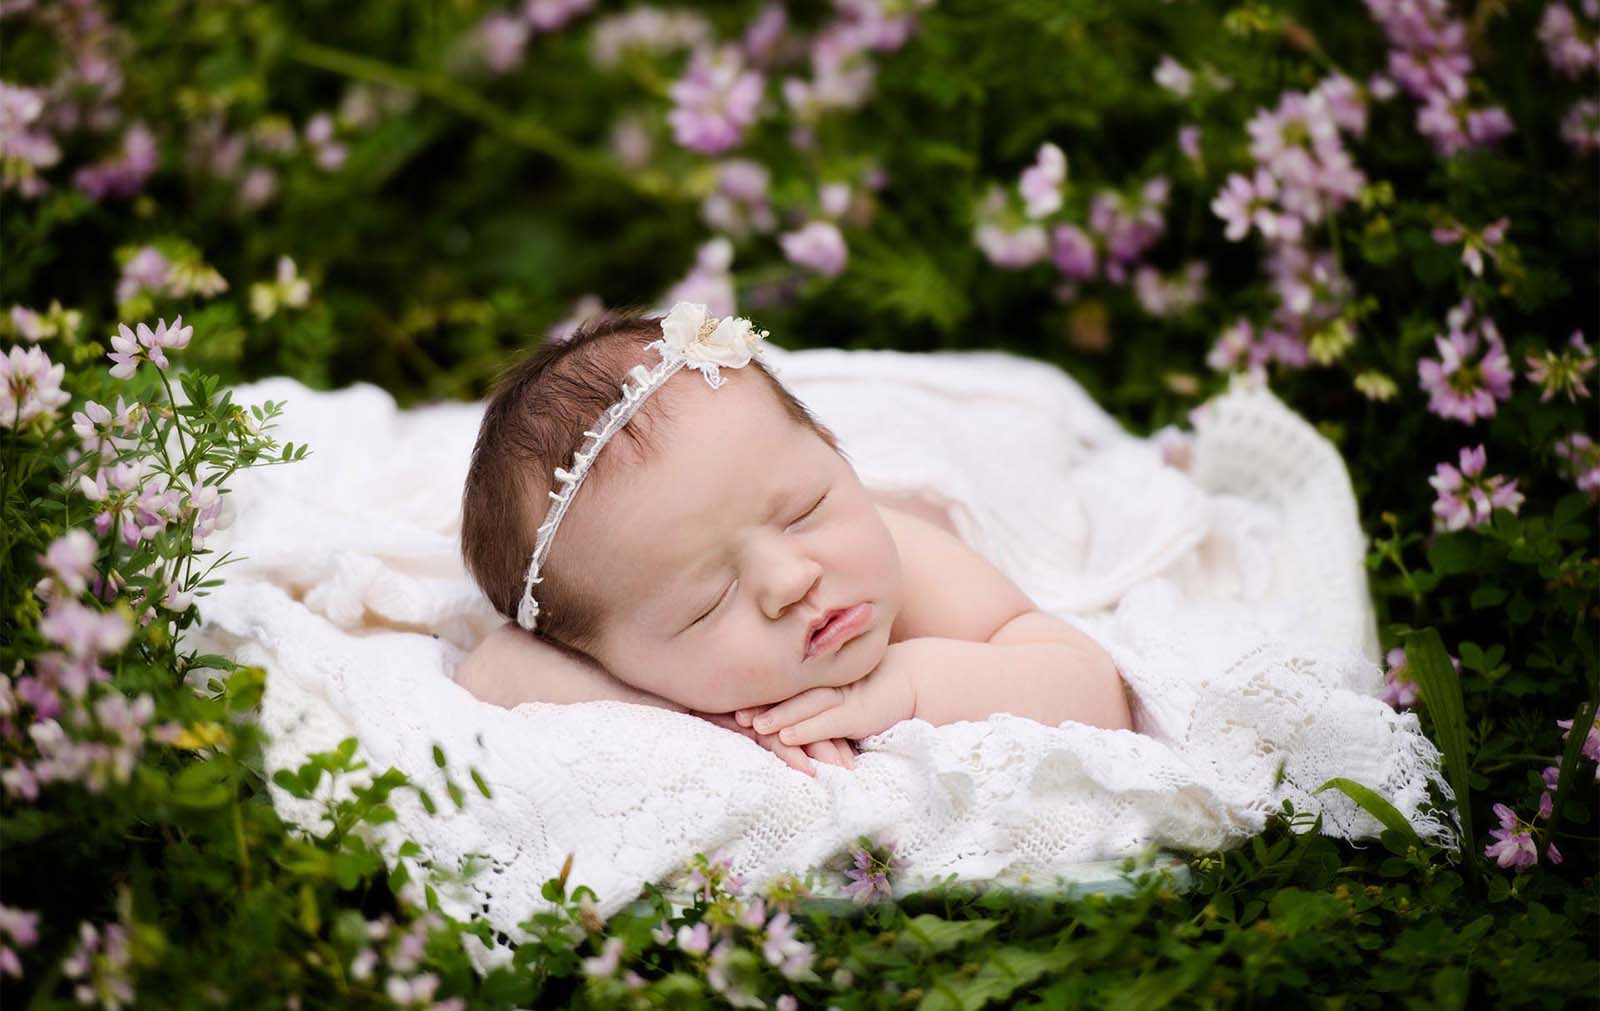 Adorable newborn baby girl surrounded by flowers